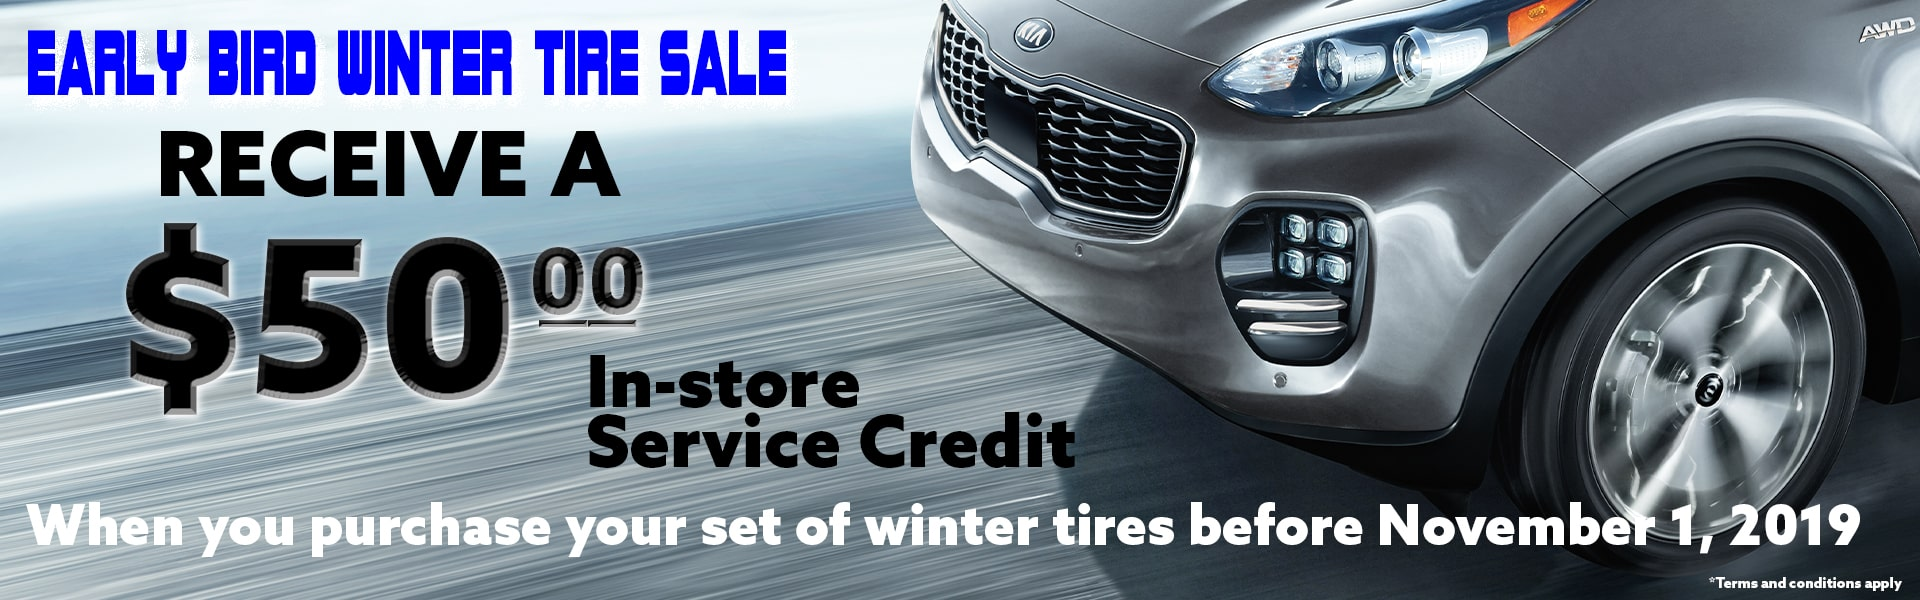 Early Bird Winter Tire Sale